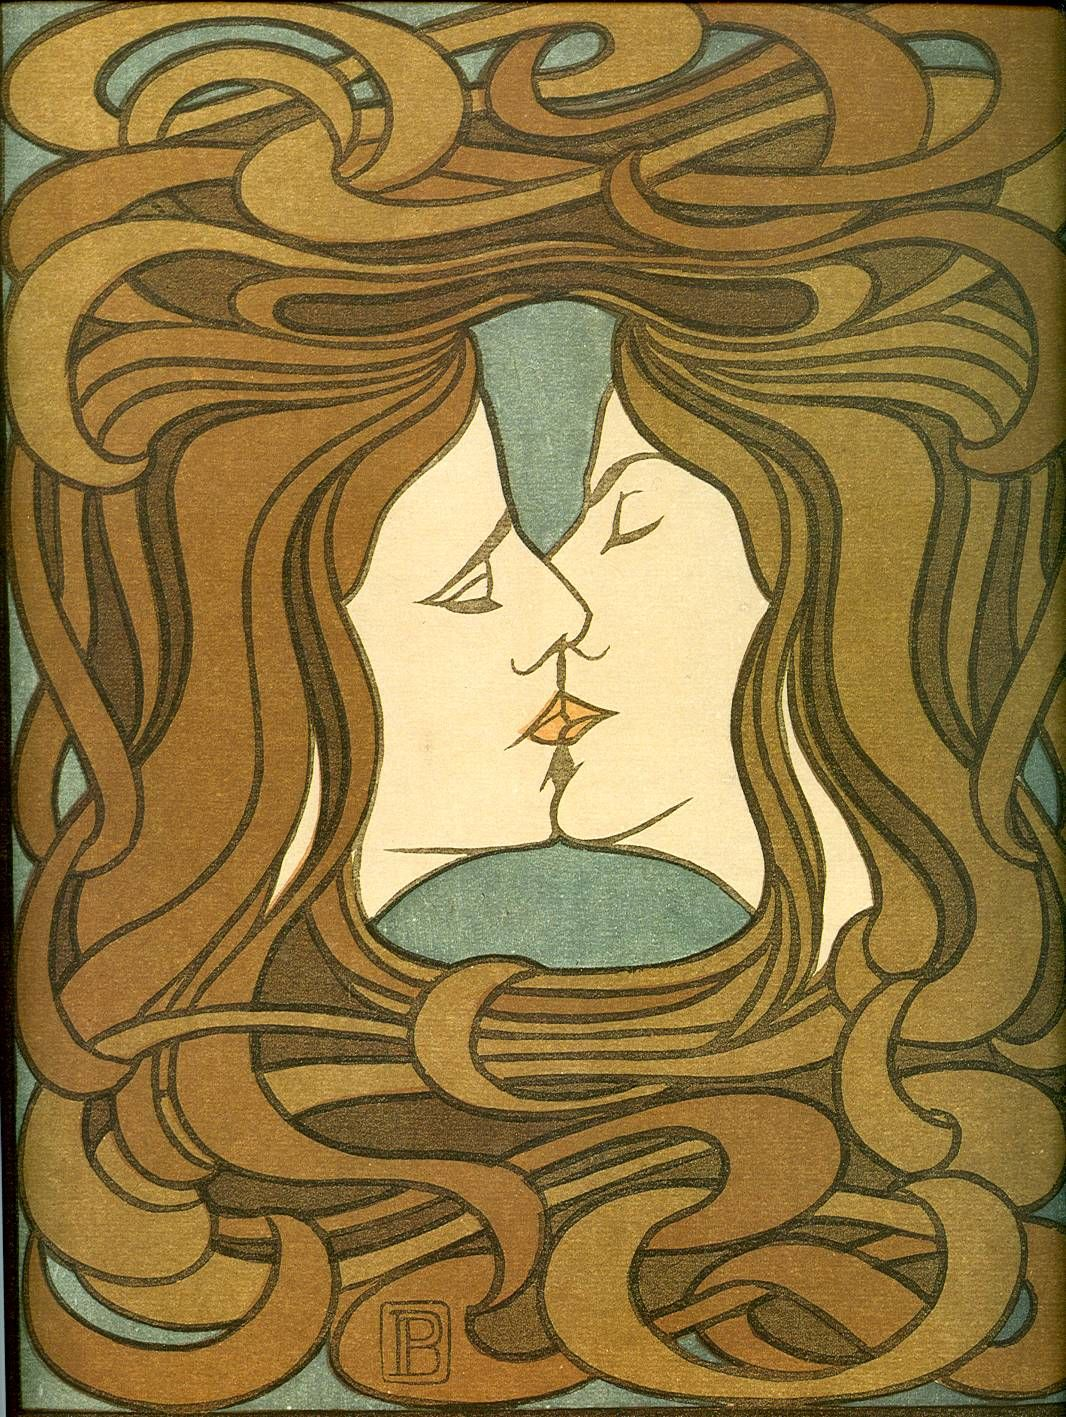 art nouveau jan toorop art nouveau of jugendstil art on the wall pinterest kus posters. Black Bedroom Furniture Sets. Home Design Ideas